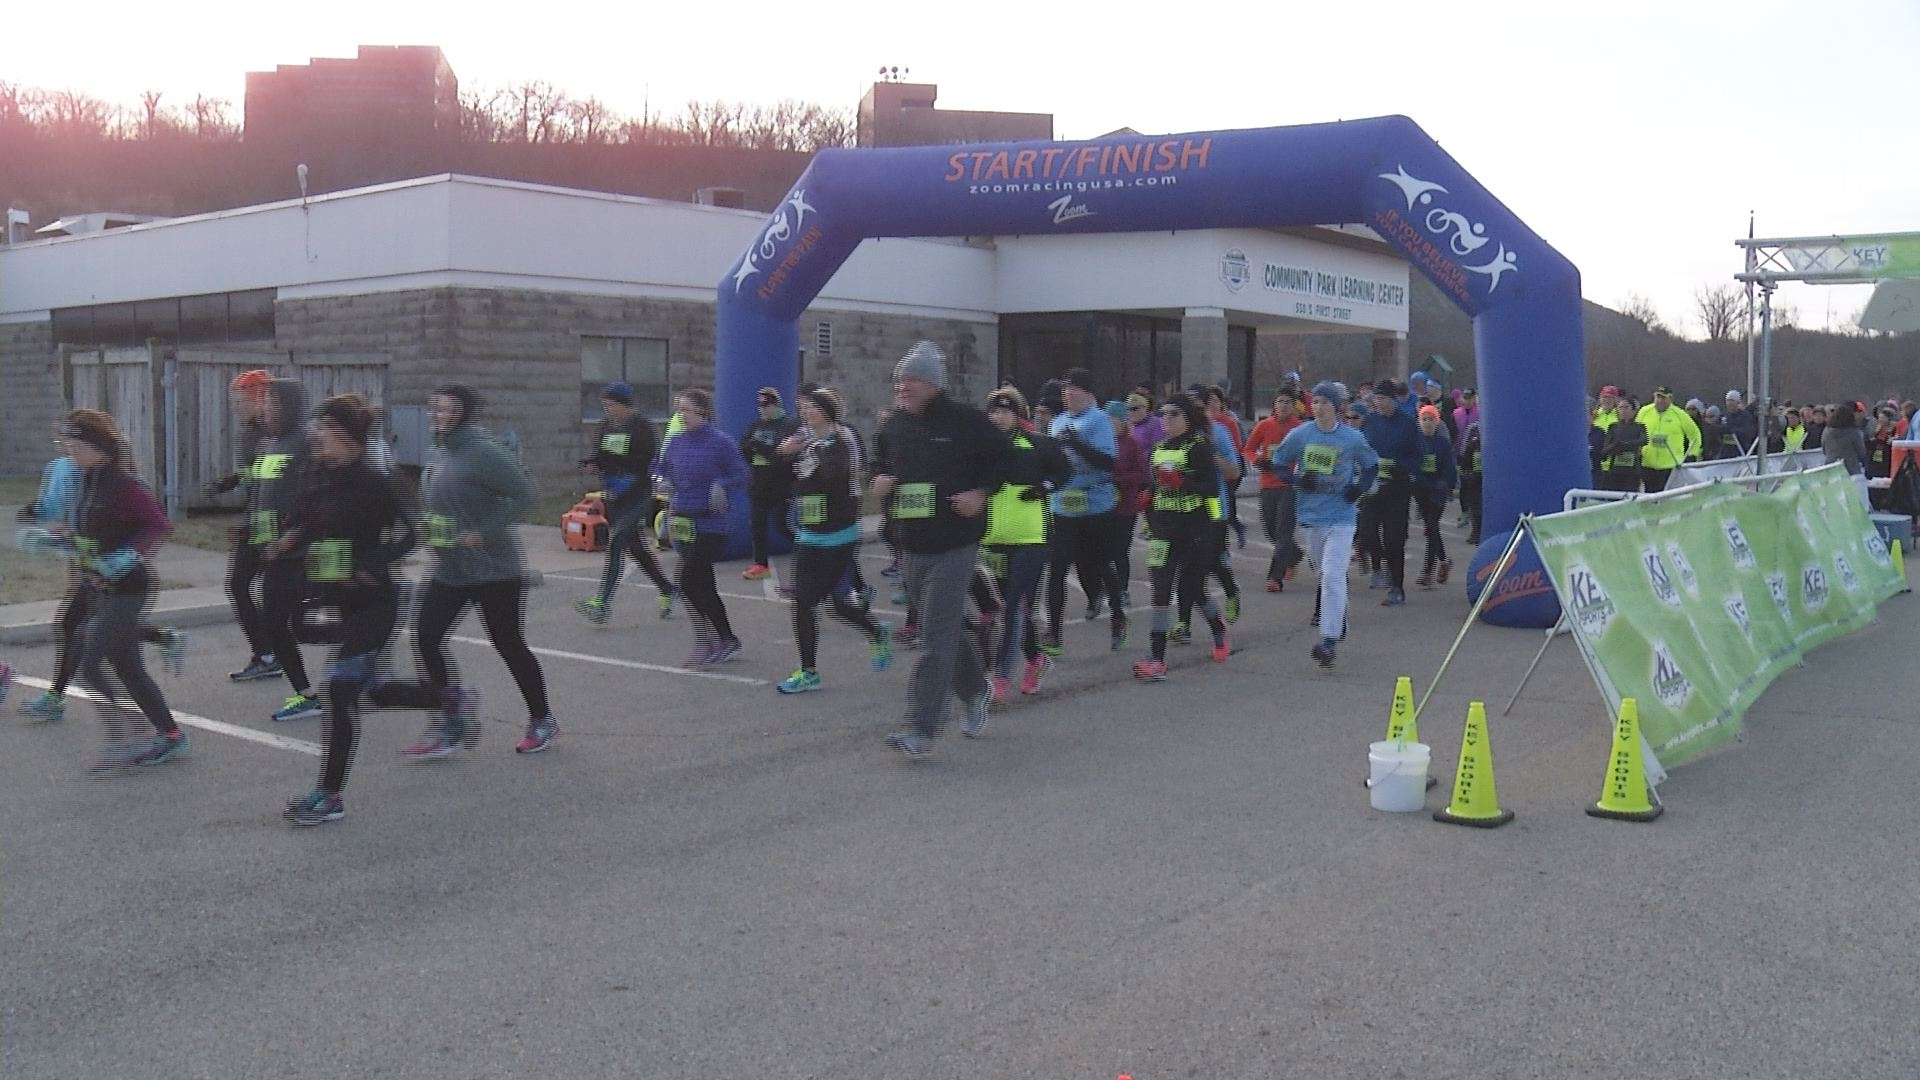 miamisburg-pancakes-and-resolutions-5k_215163